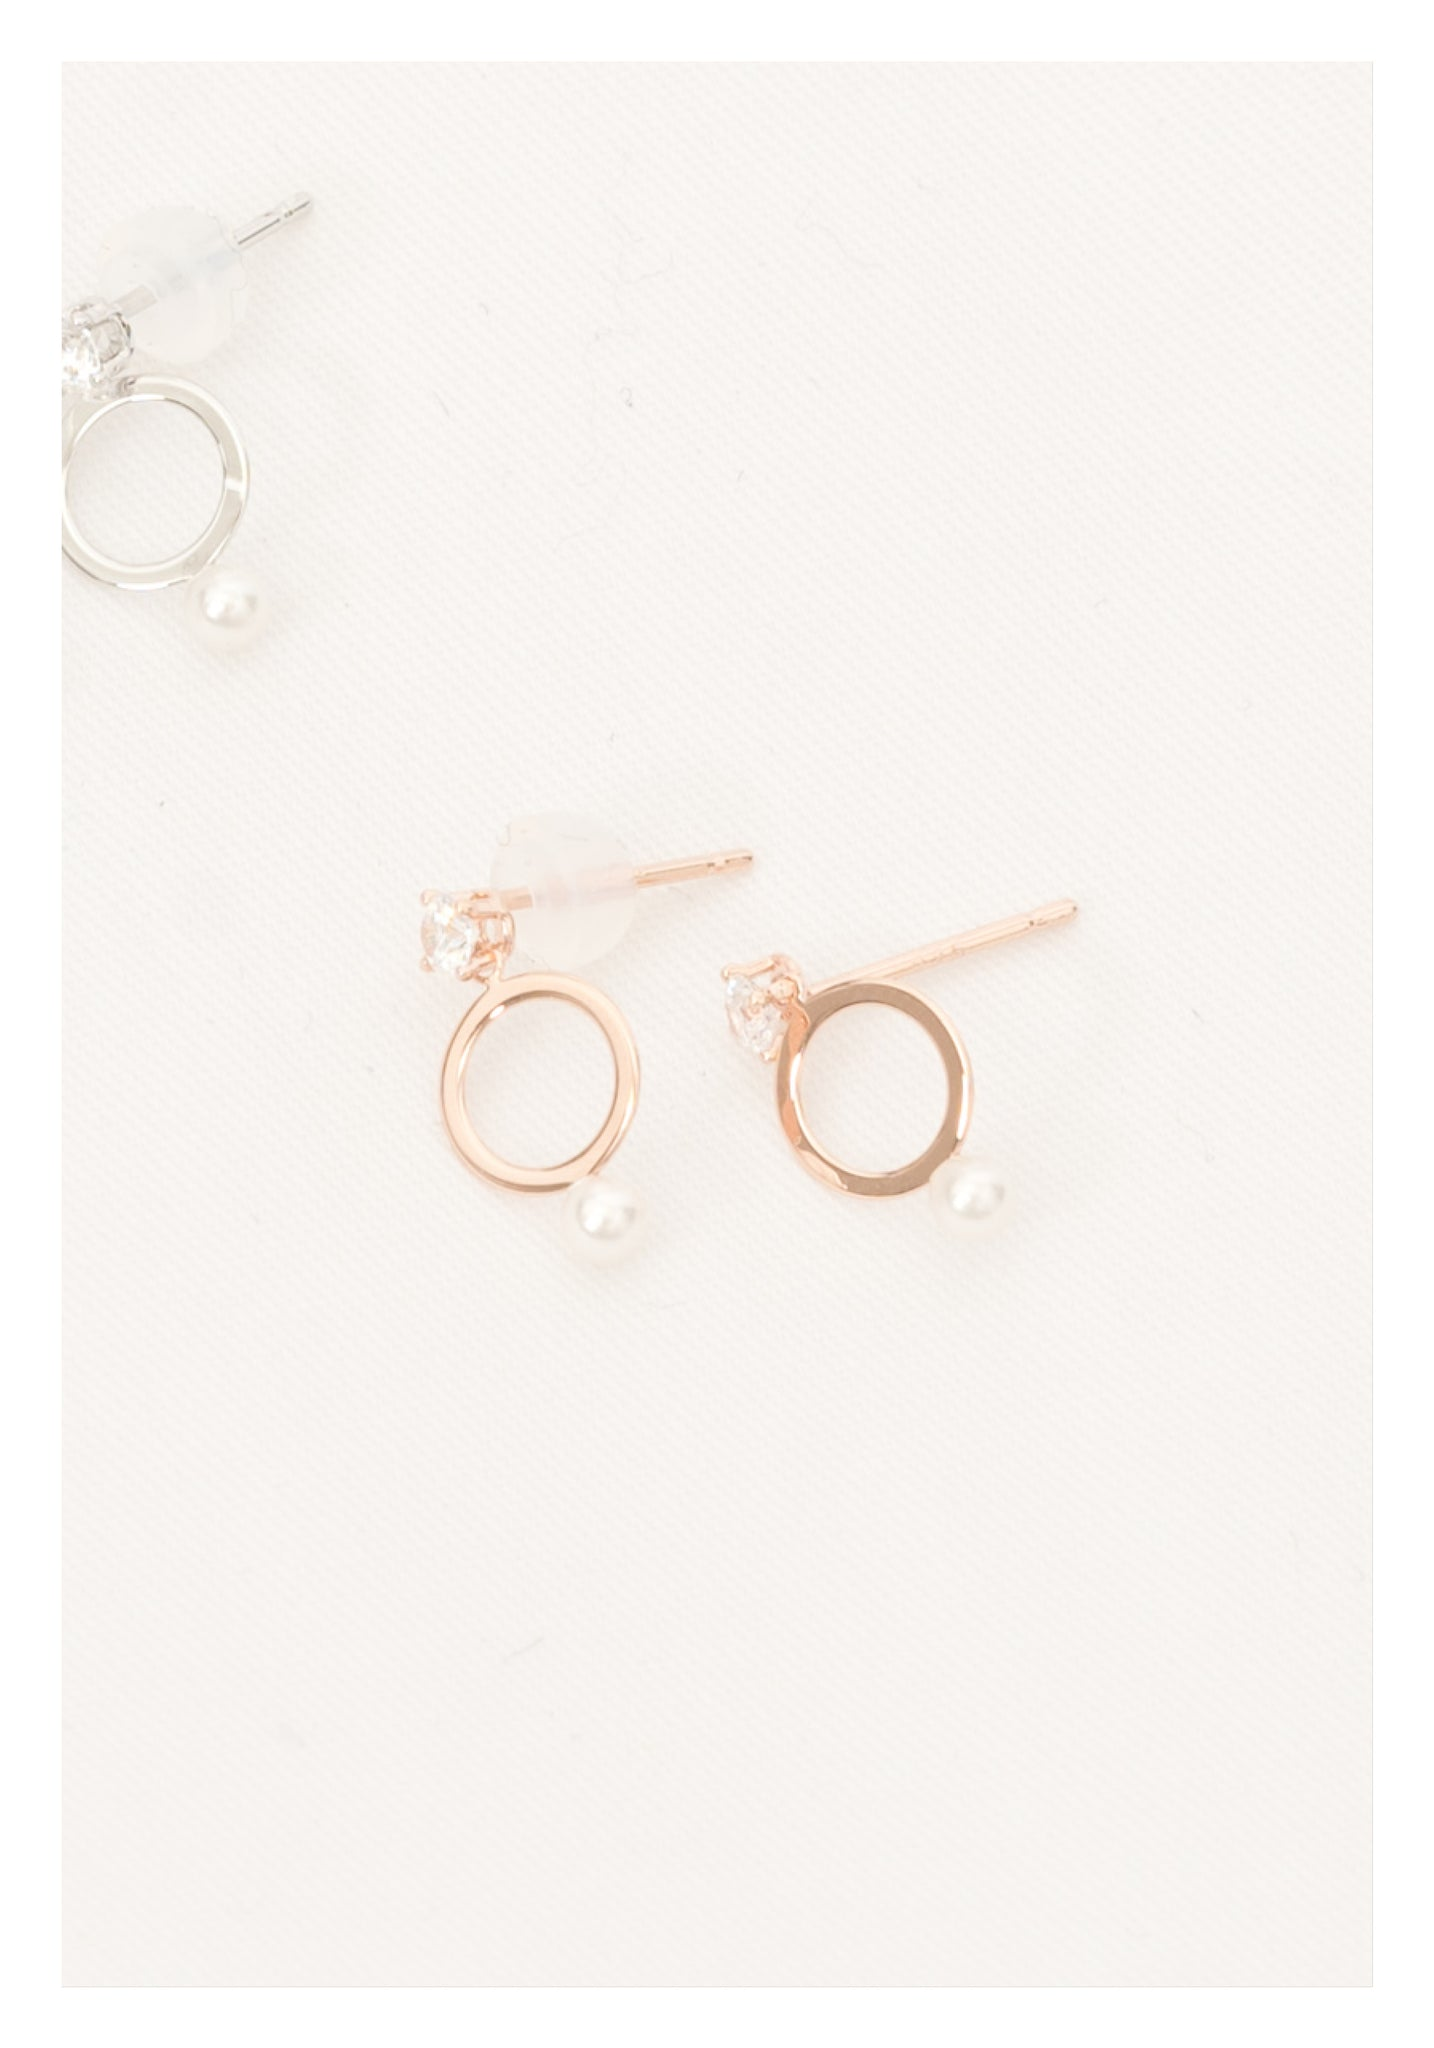 925 Silver Rose Gold And Pearl Ring Earrings - whoami